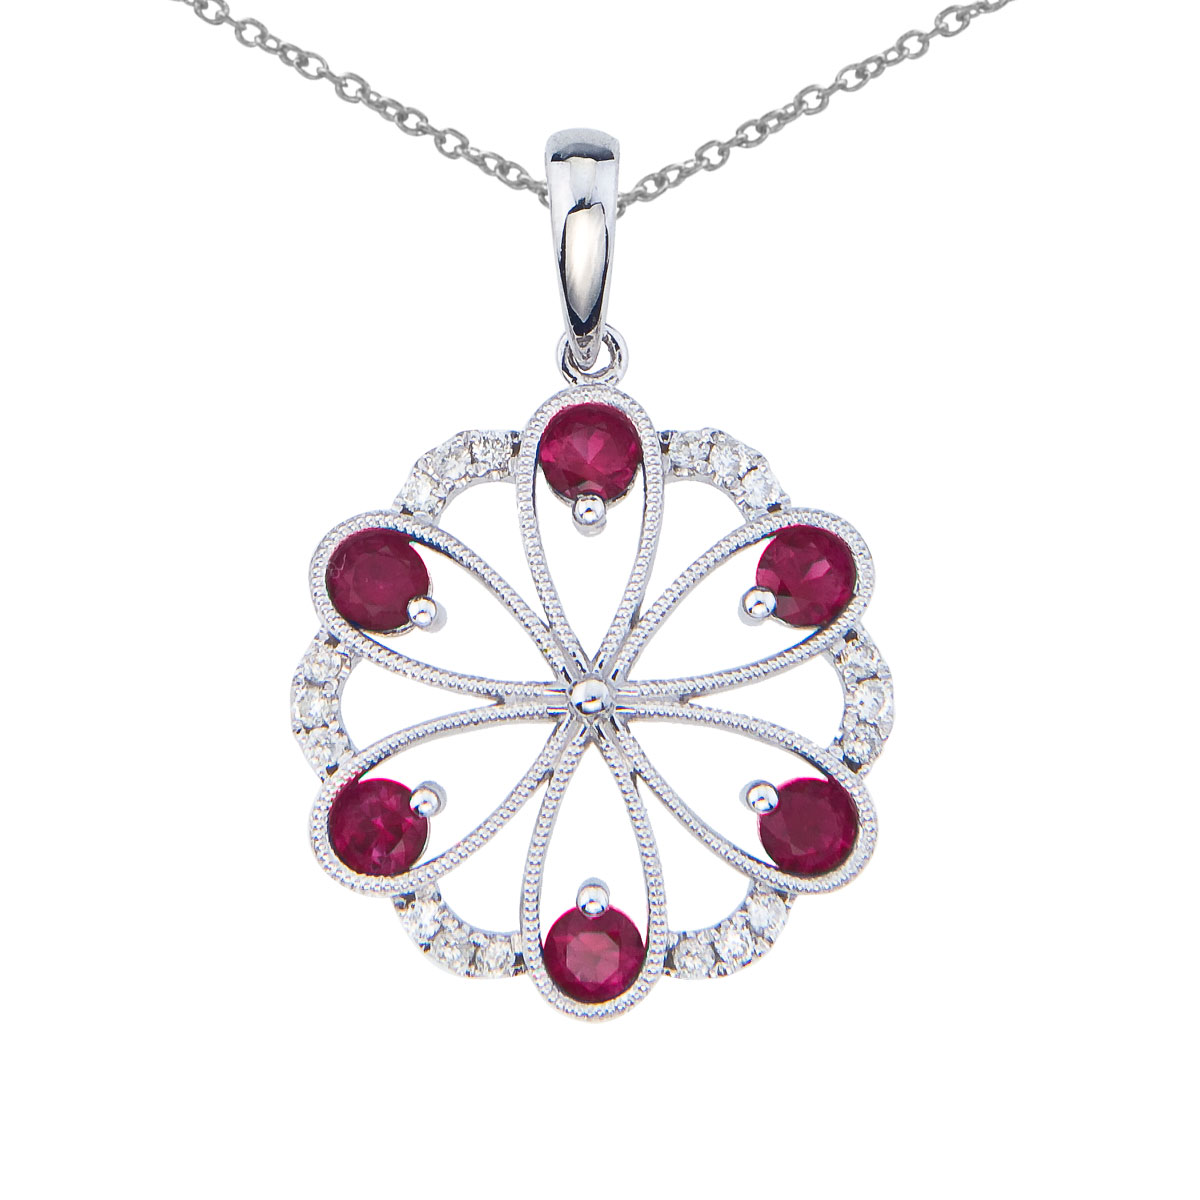 Beautiful floral pendant set in 14k white gold with 6 dazzling rubies and .14 total carats of bri...